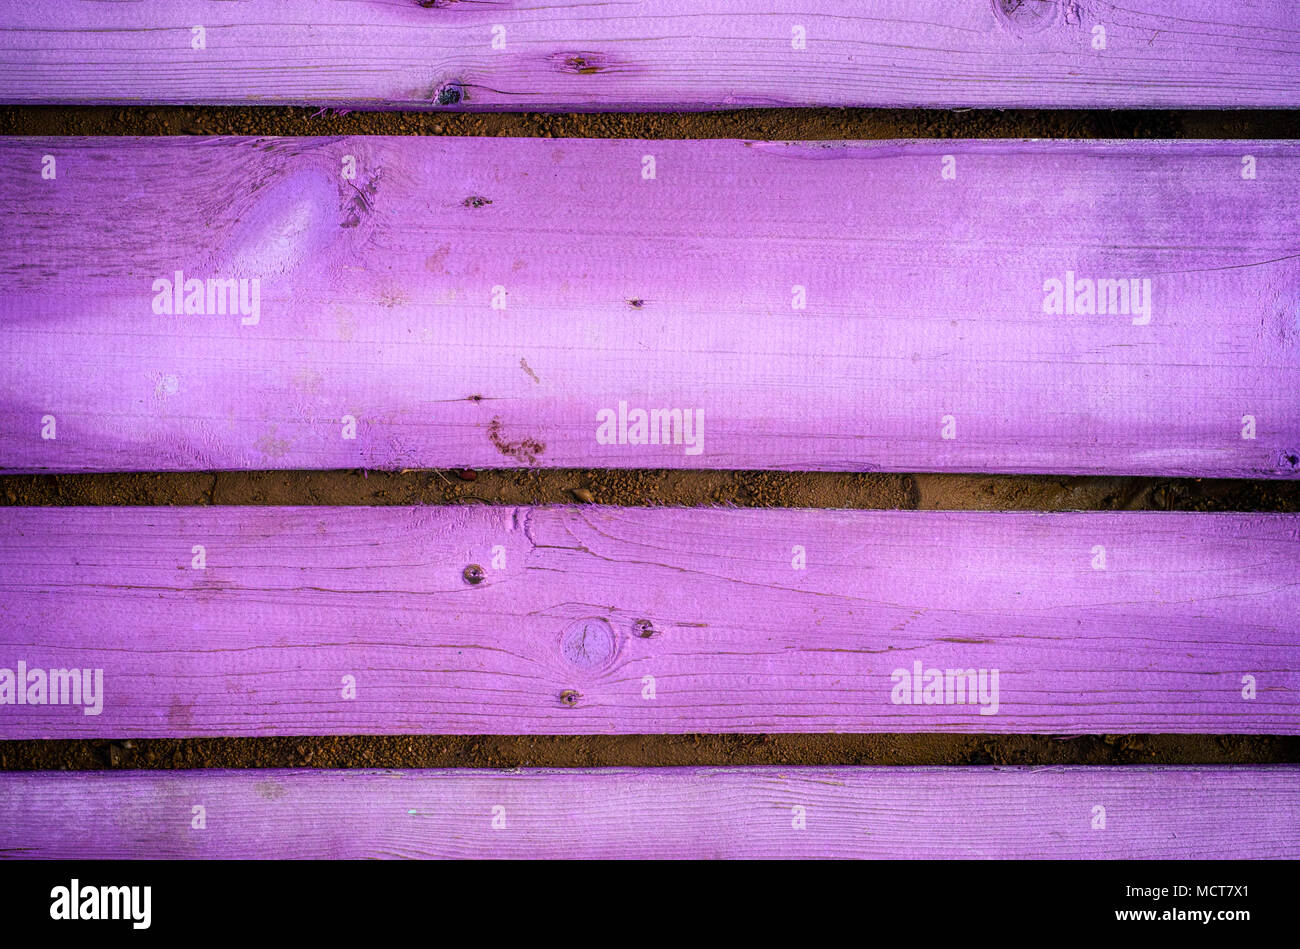 Background of purple wooden planks. Close-up. - Stock Image